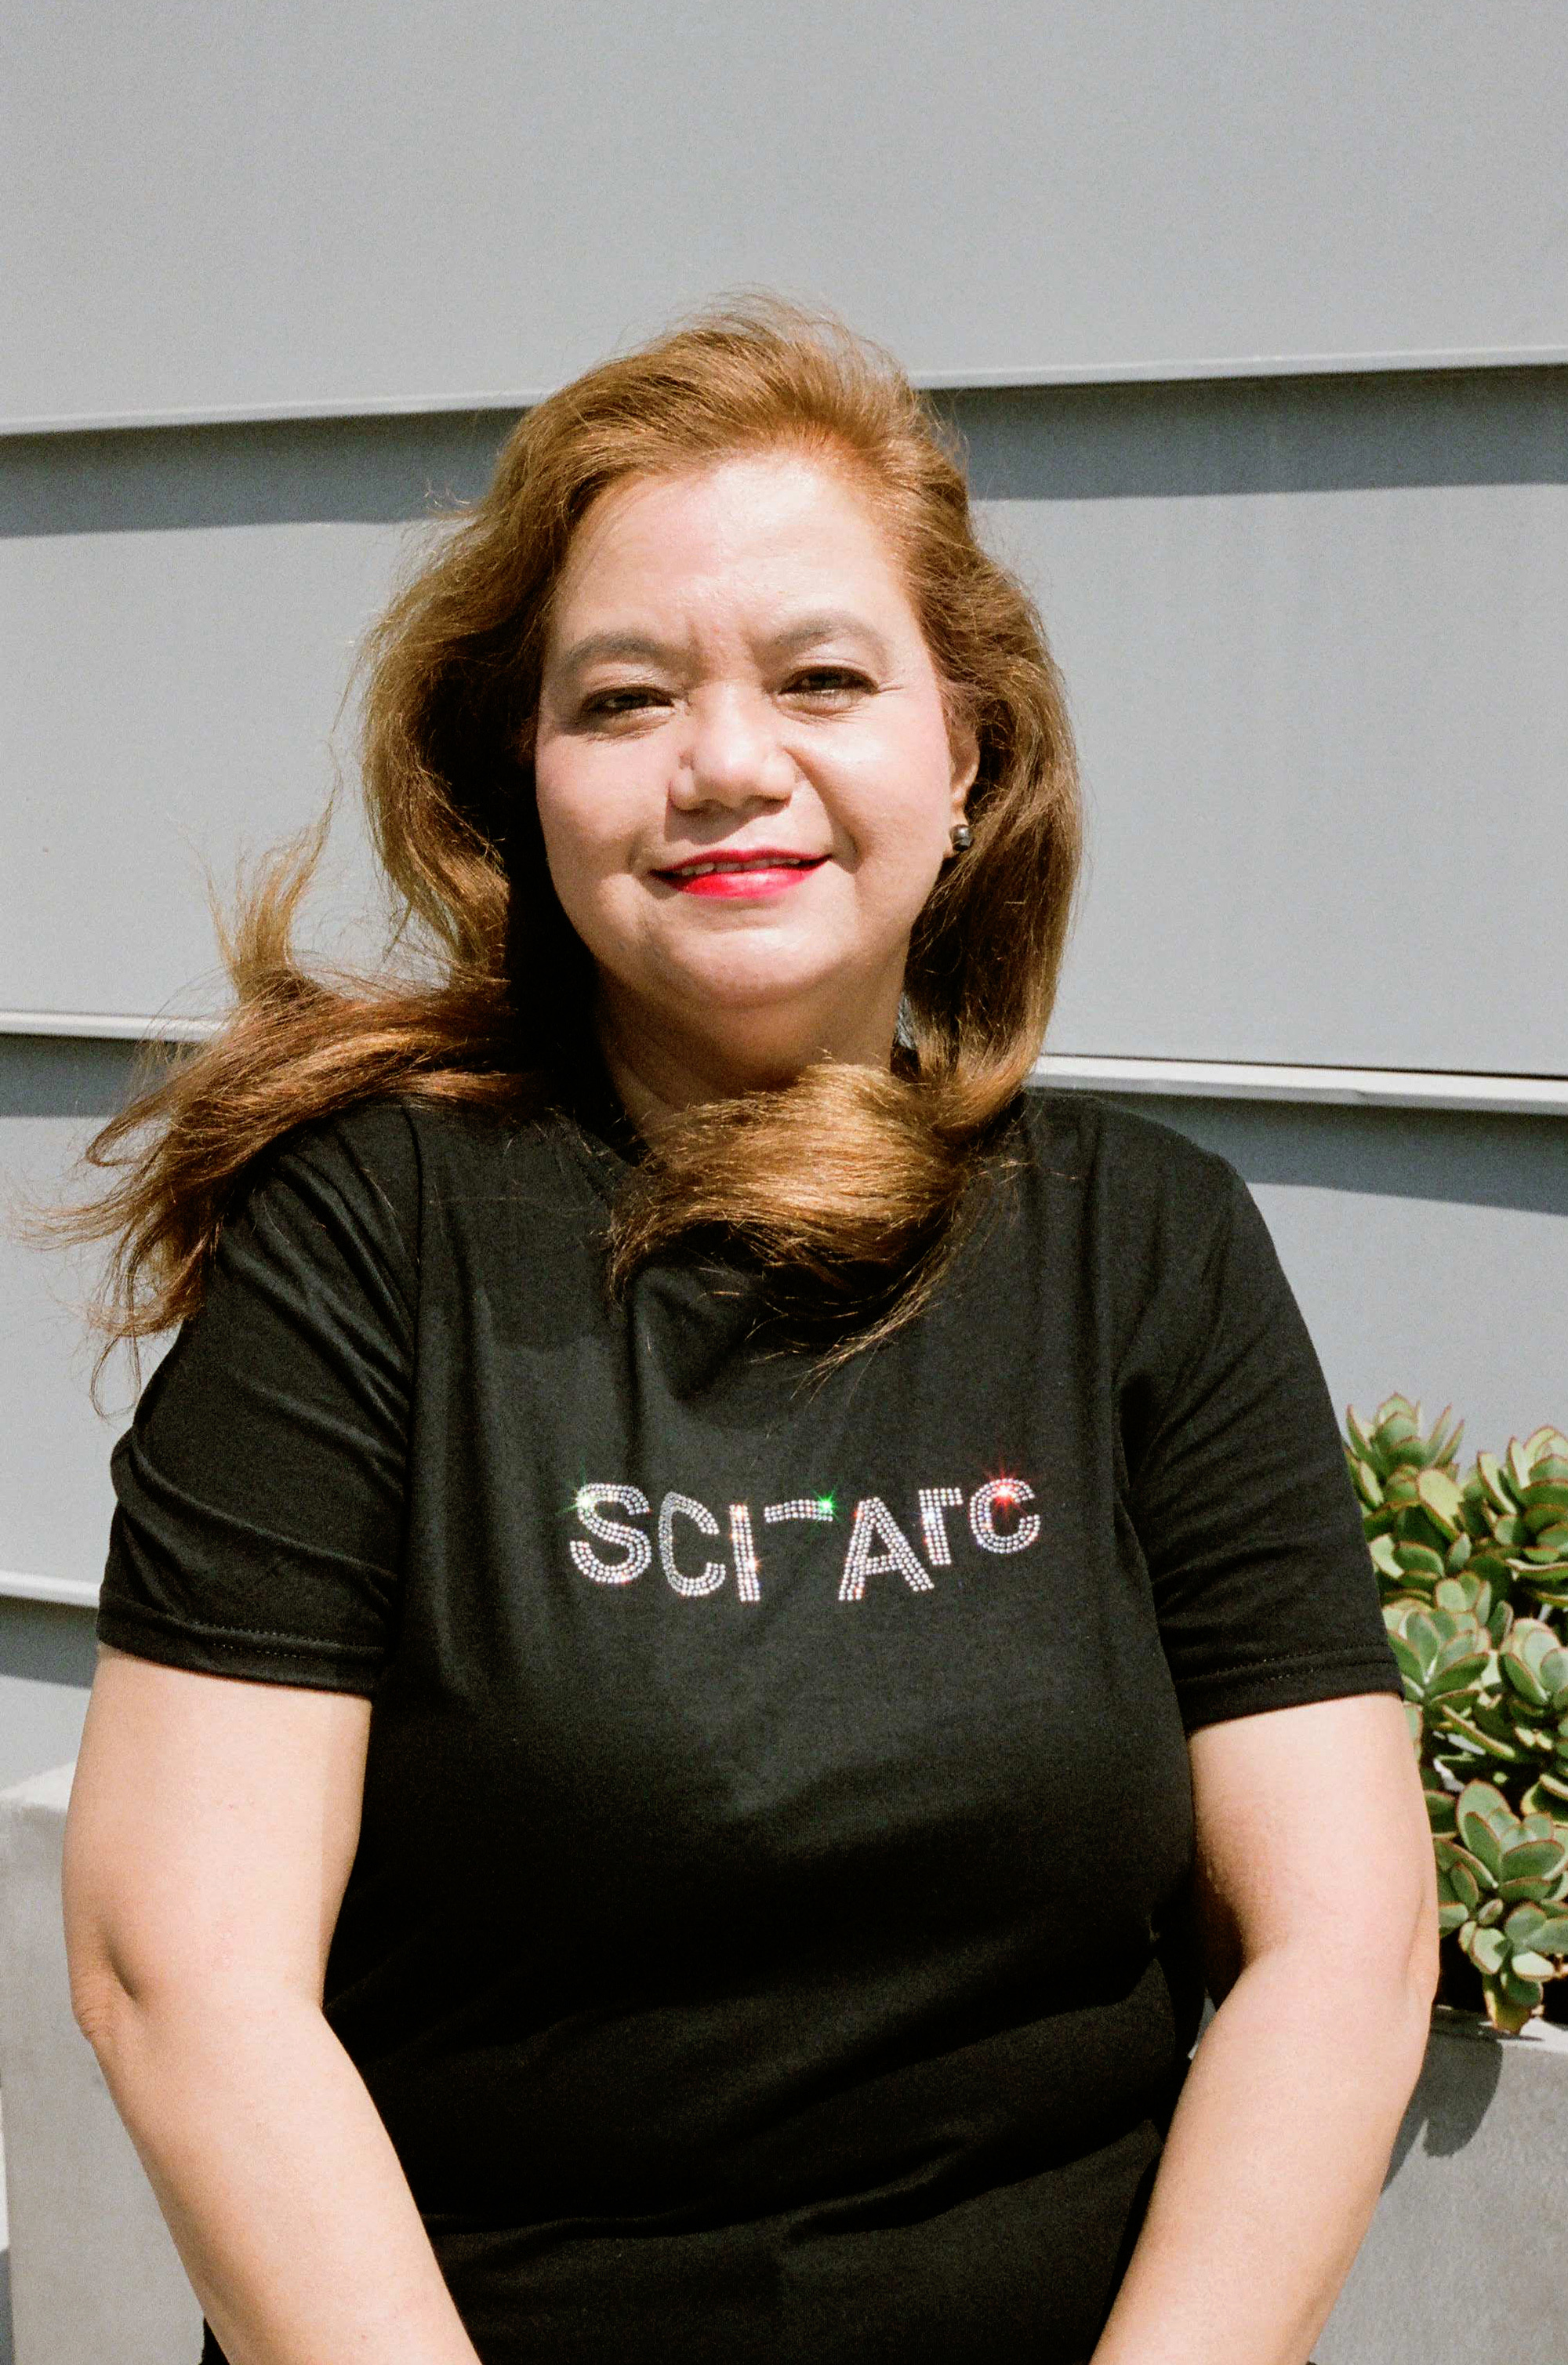 becky cuenco SCI-Arc tee